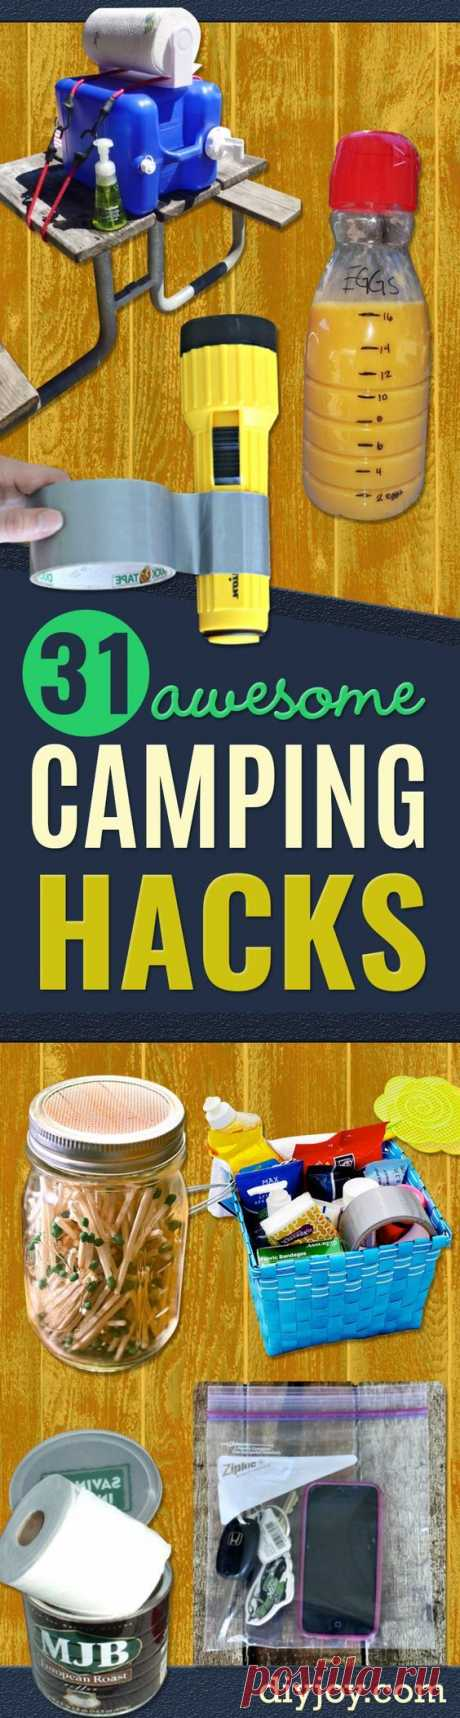 DIY Camping Hacks - Easy Tips and Tricks, Recipes for Camping - Gear Ideas, Cheap Camping Supplies, Tutorials for Making Quick Camping Food, Fire Starters, Gear Holders and More http:\/\/diyjoy.com\/diy-camping-hacks